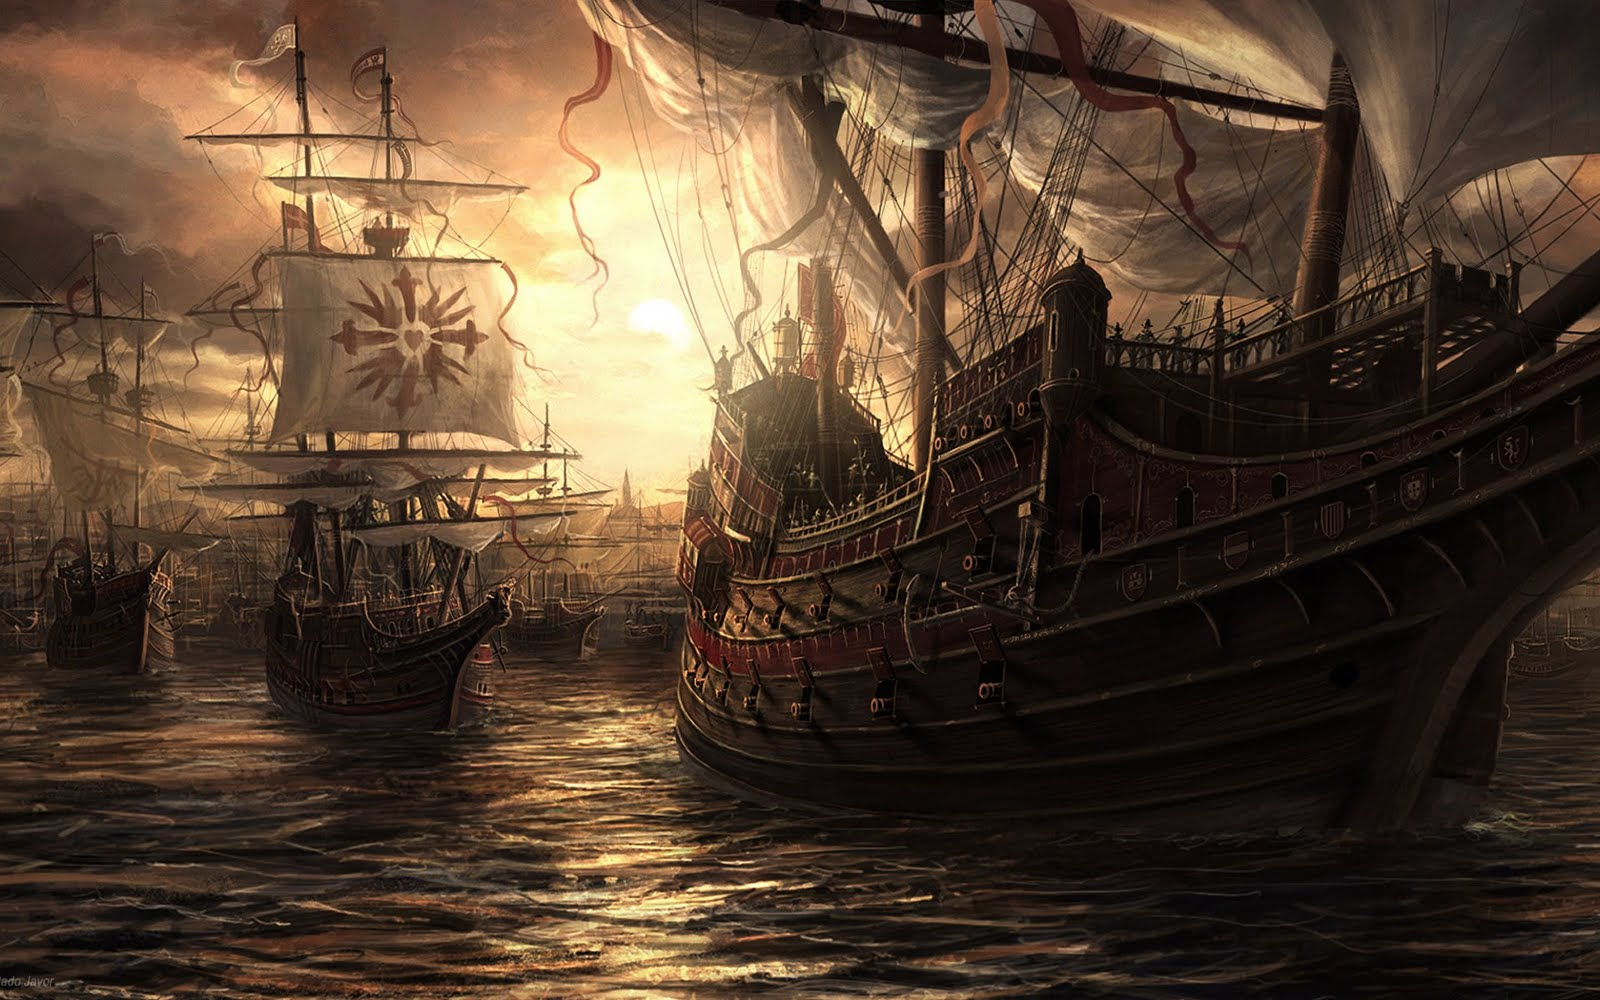 Pirate Ship Wallpapers  Wallpaper  1600x1000